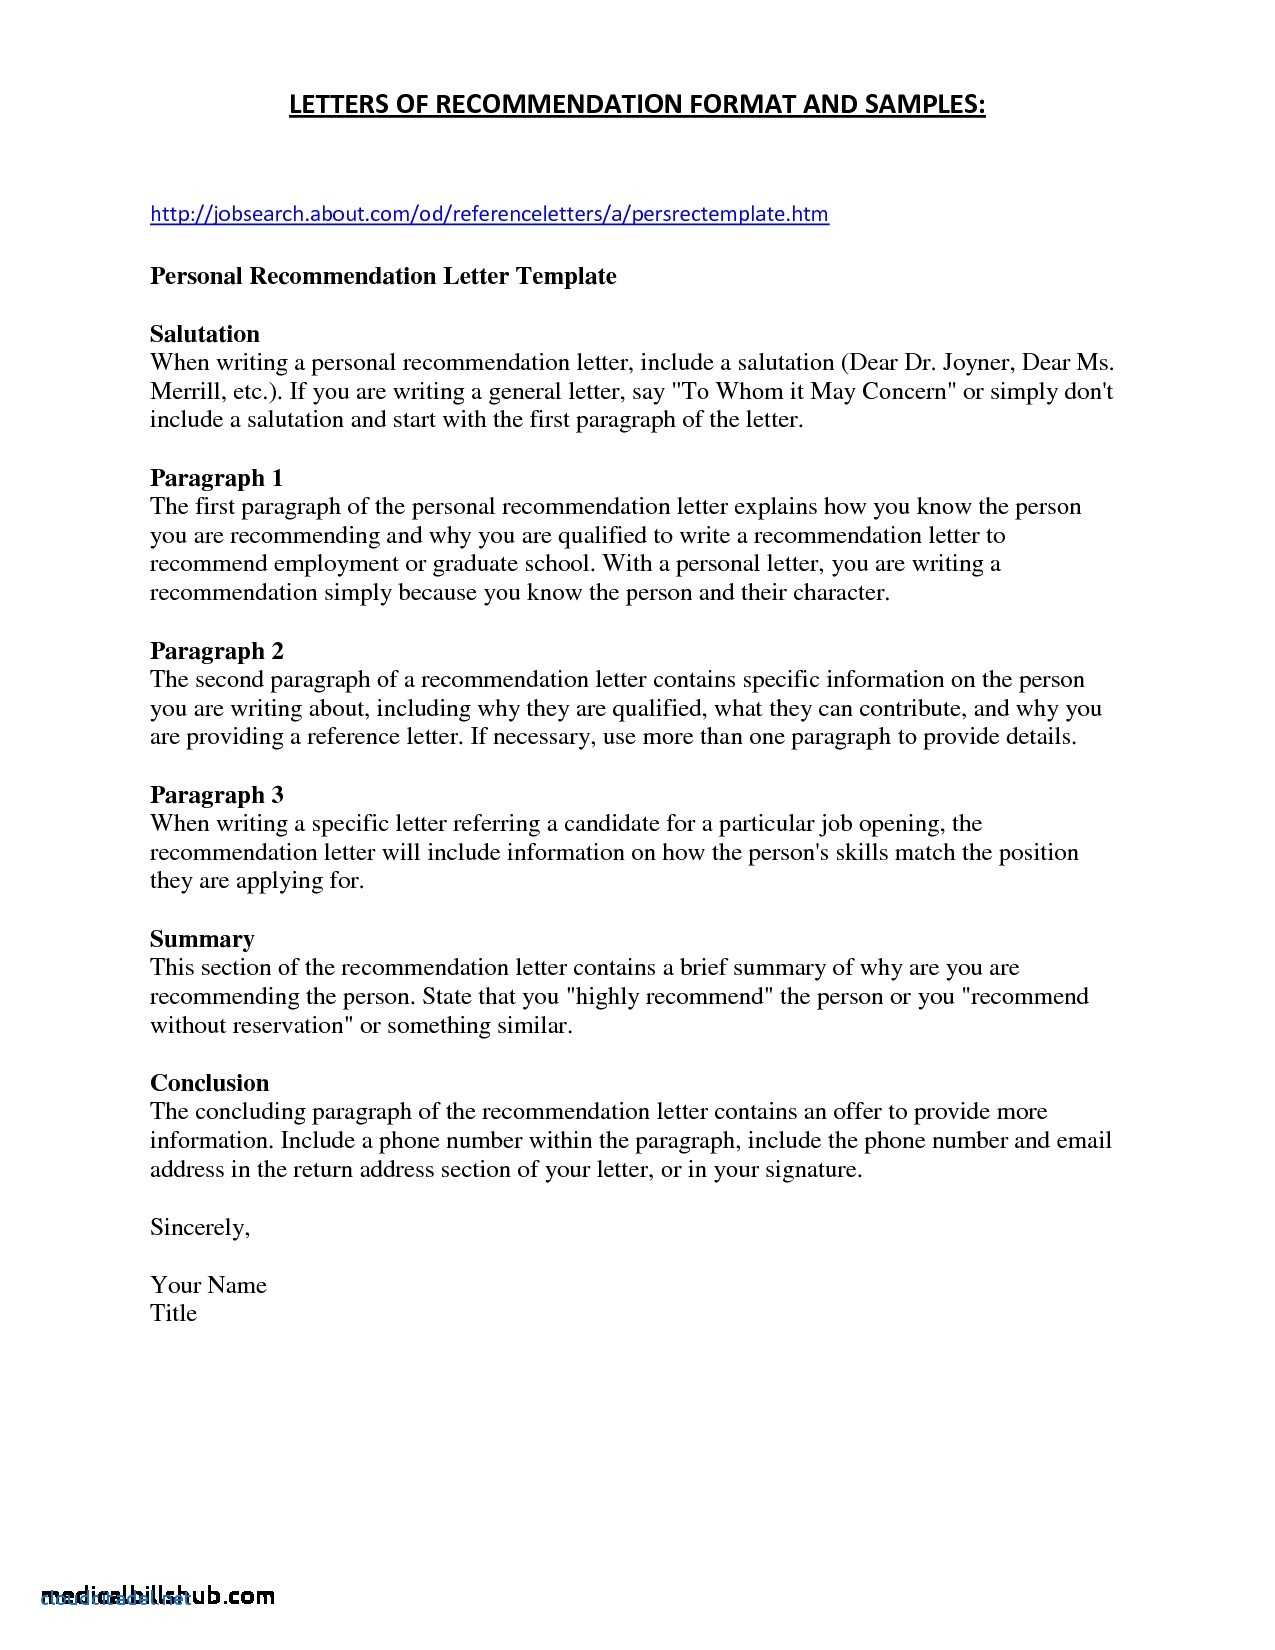 nursing letter of recommendation template example-Re mendation Letter Sample For Graduate School From Employer Refrence Sample Re Mendation Letter From Employer For Nursing School 8-q